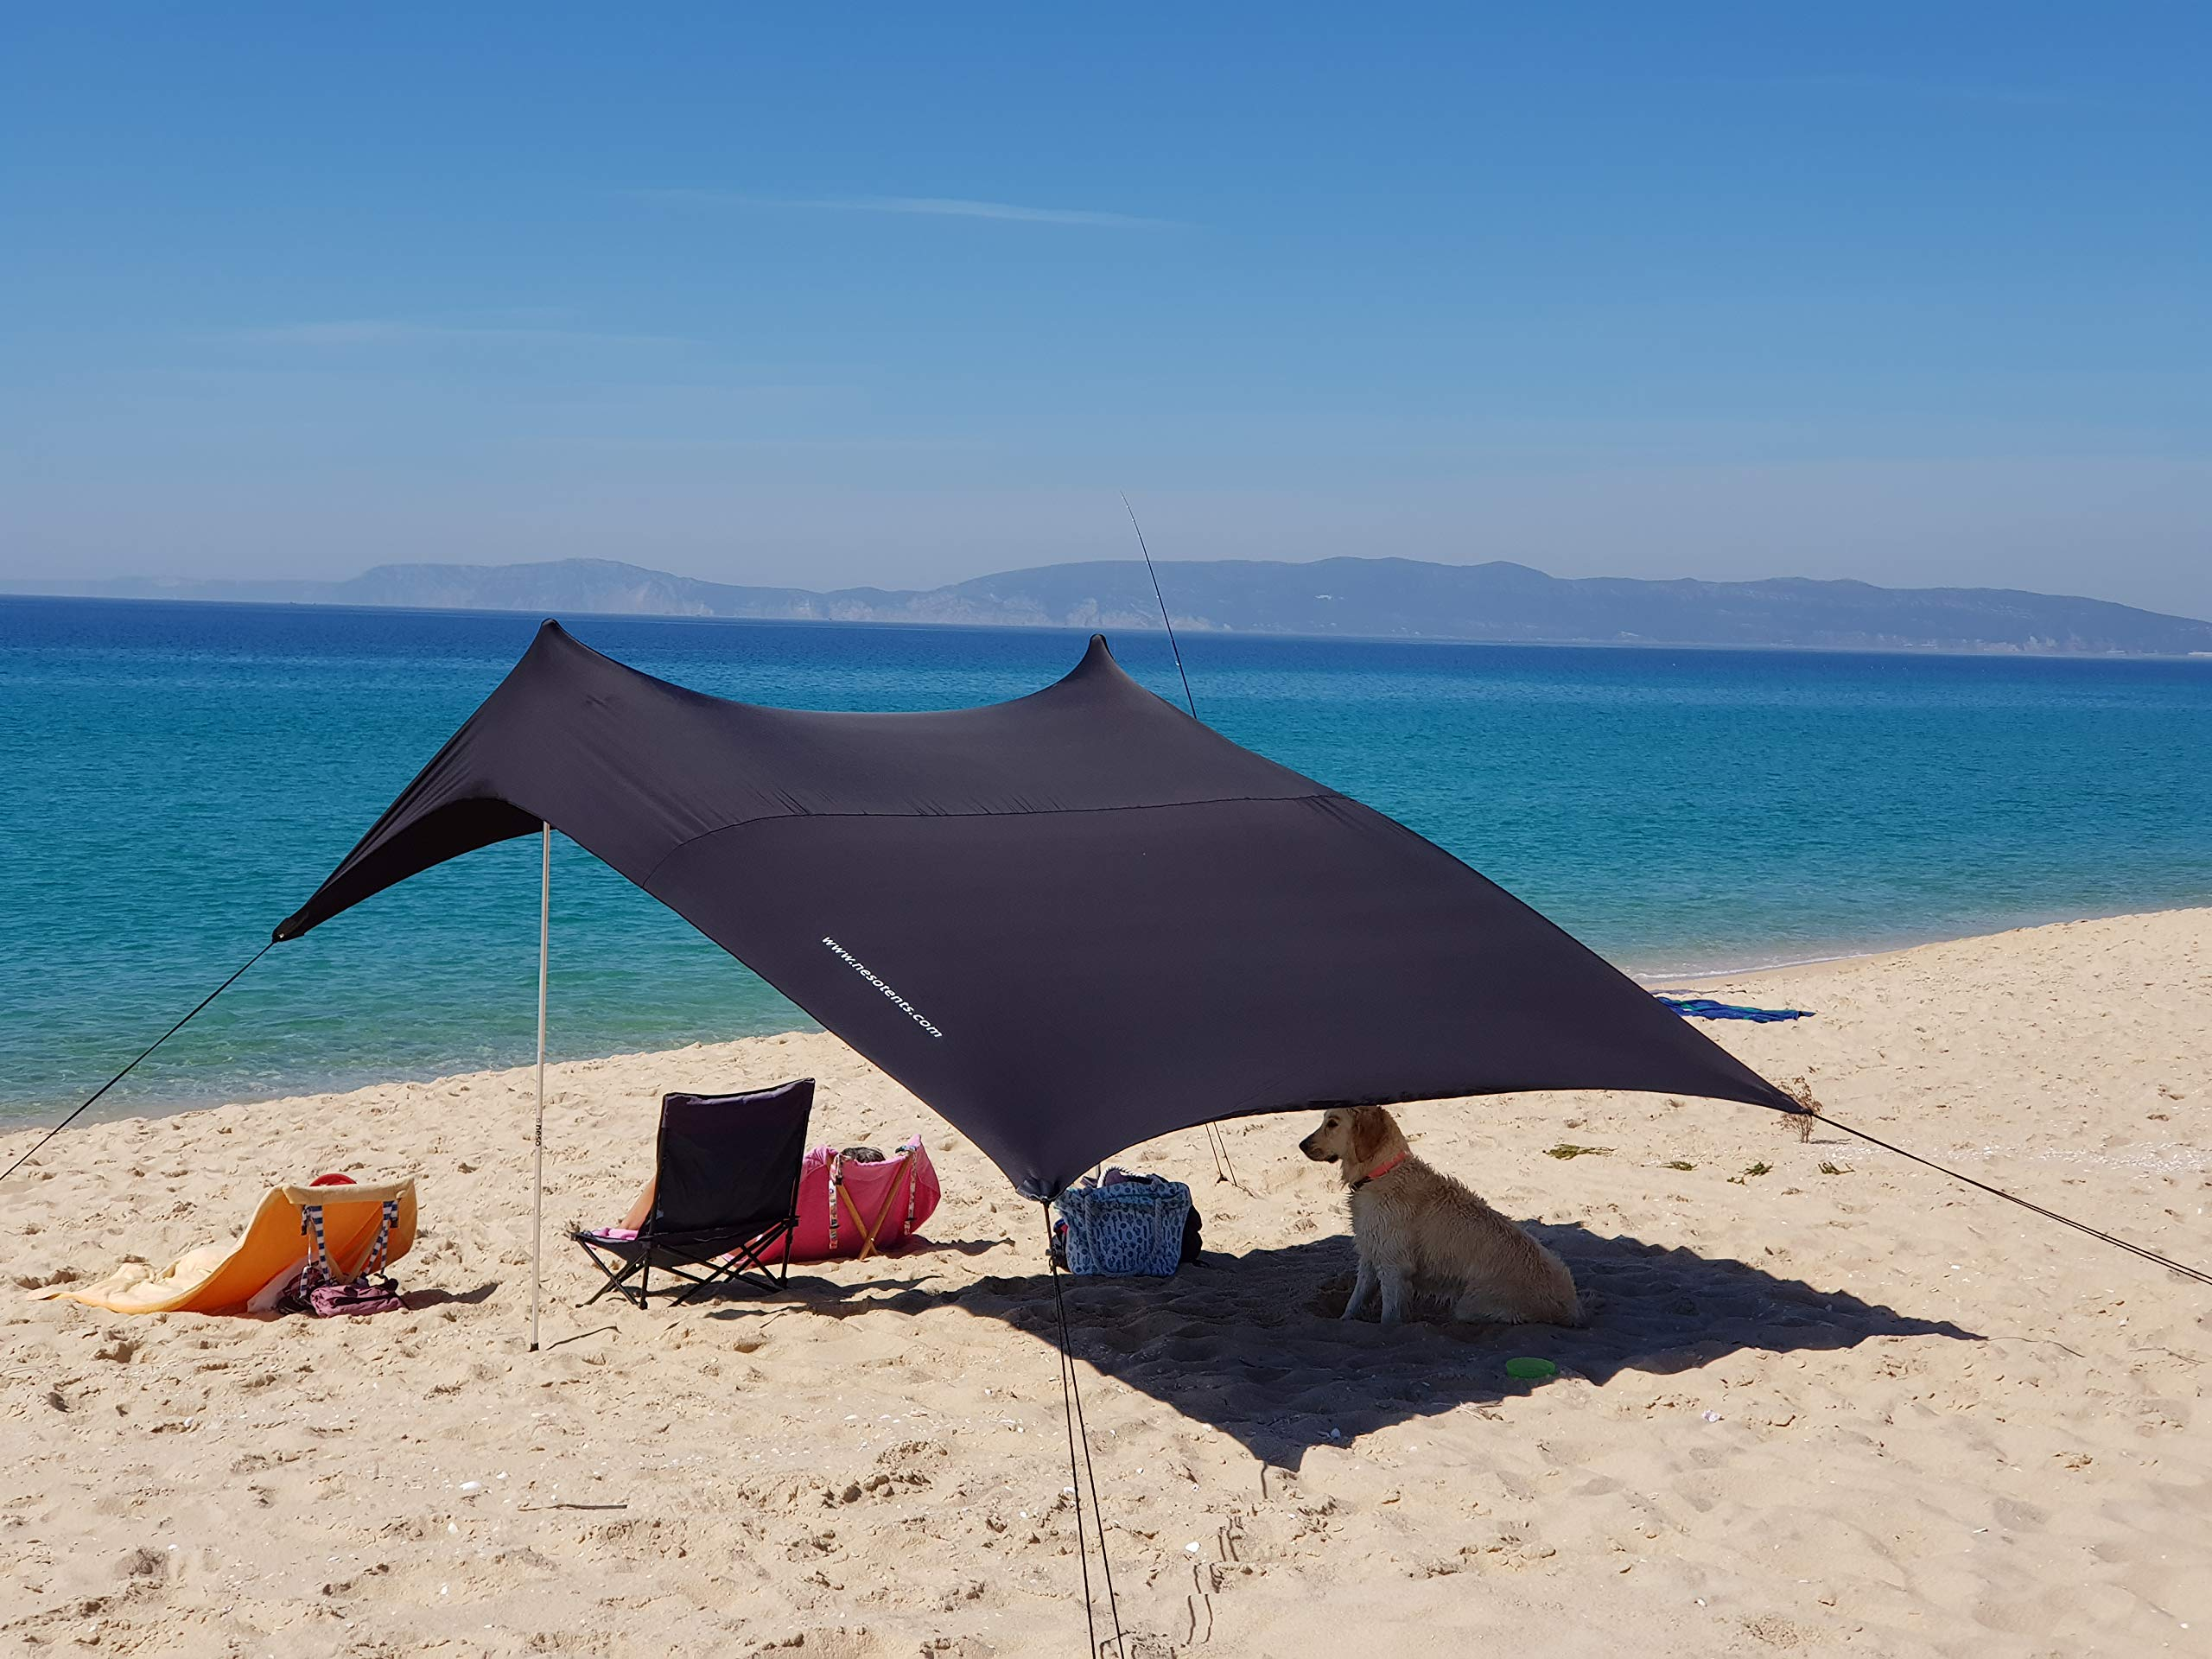 Neso Tents Beach Tent with Sand Anchor, Portable Canopy Sunshade - 7' x 7' - Patented Reinforced Corners(Black) by Neso